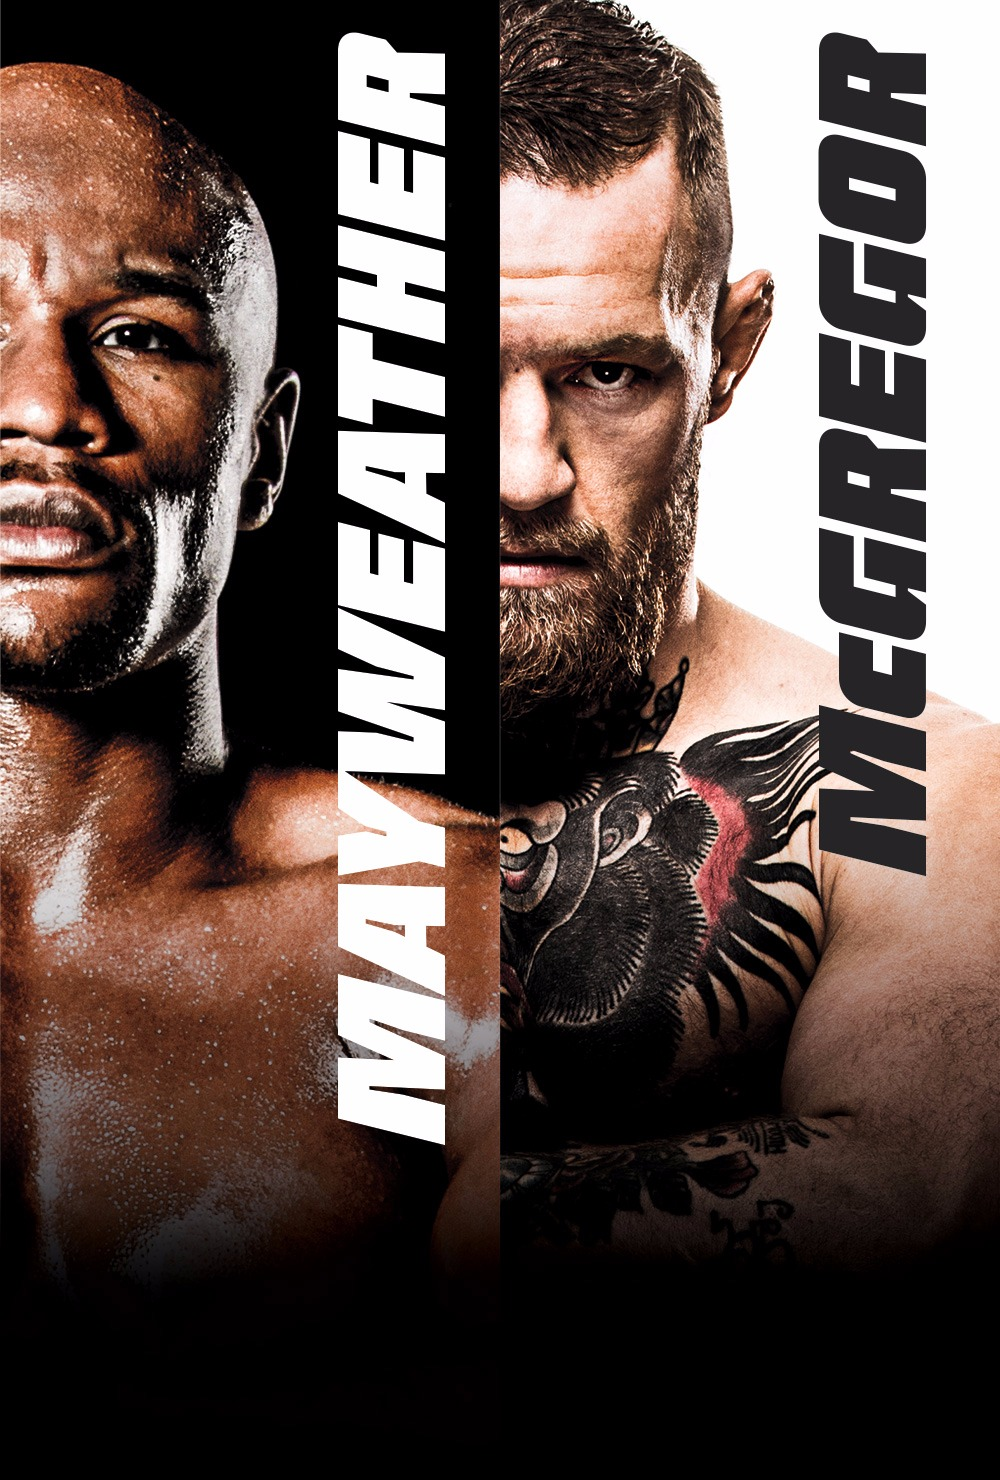 mayweather vs mcgregor fight in movie theaters fathom events